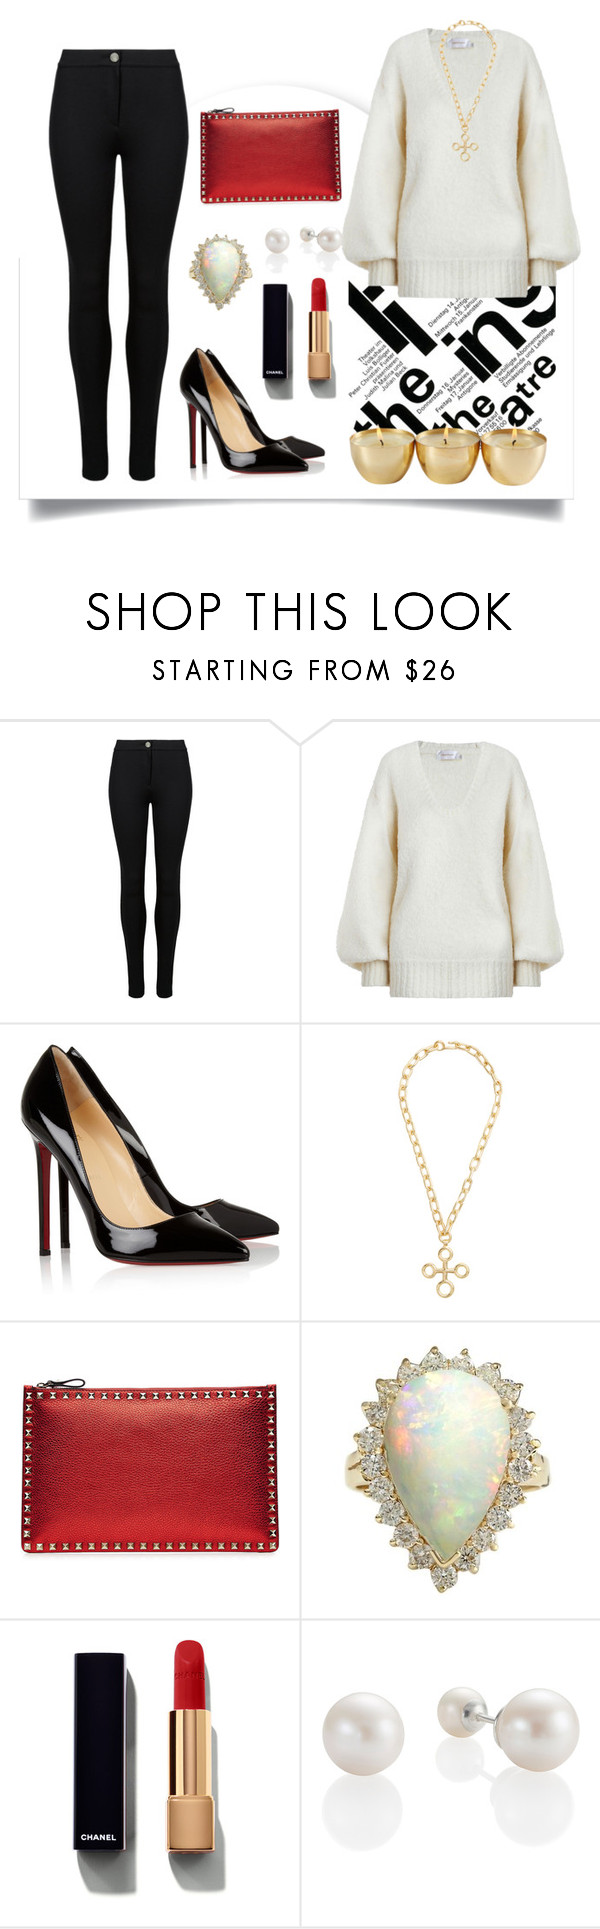 """#759"" by karol-andrade ❤ liked on Polyvore featuring M&S, Zimmermann, Christian Louboutin, Chufy, Valentino and Chanel"